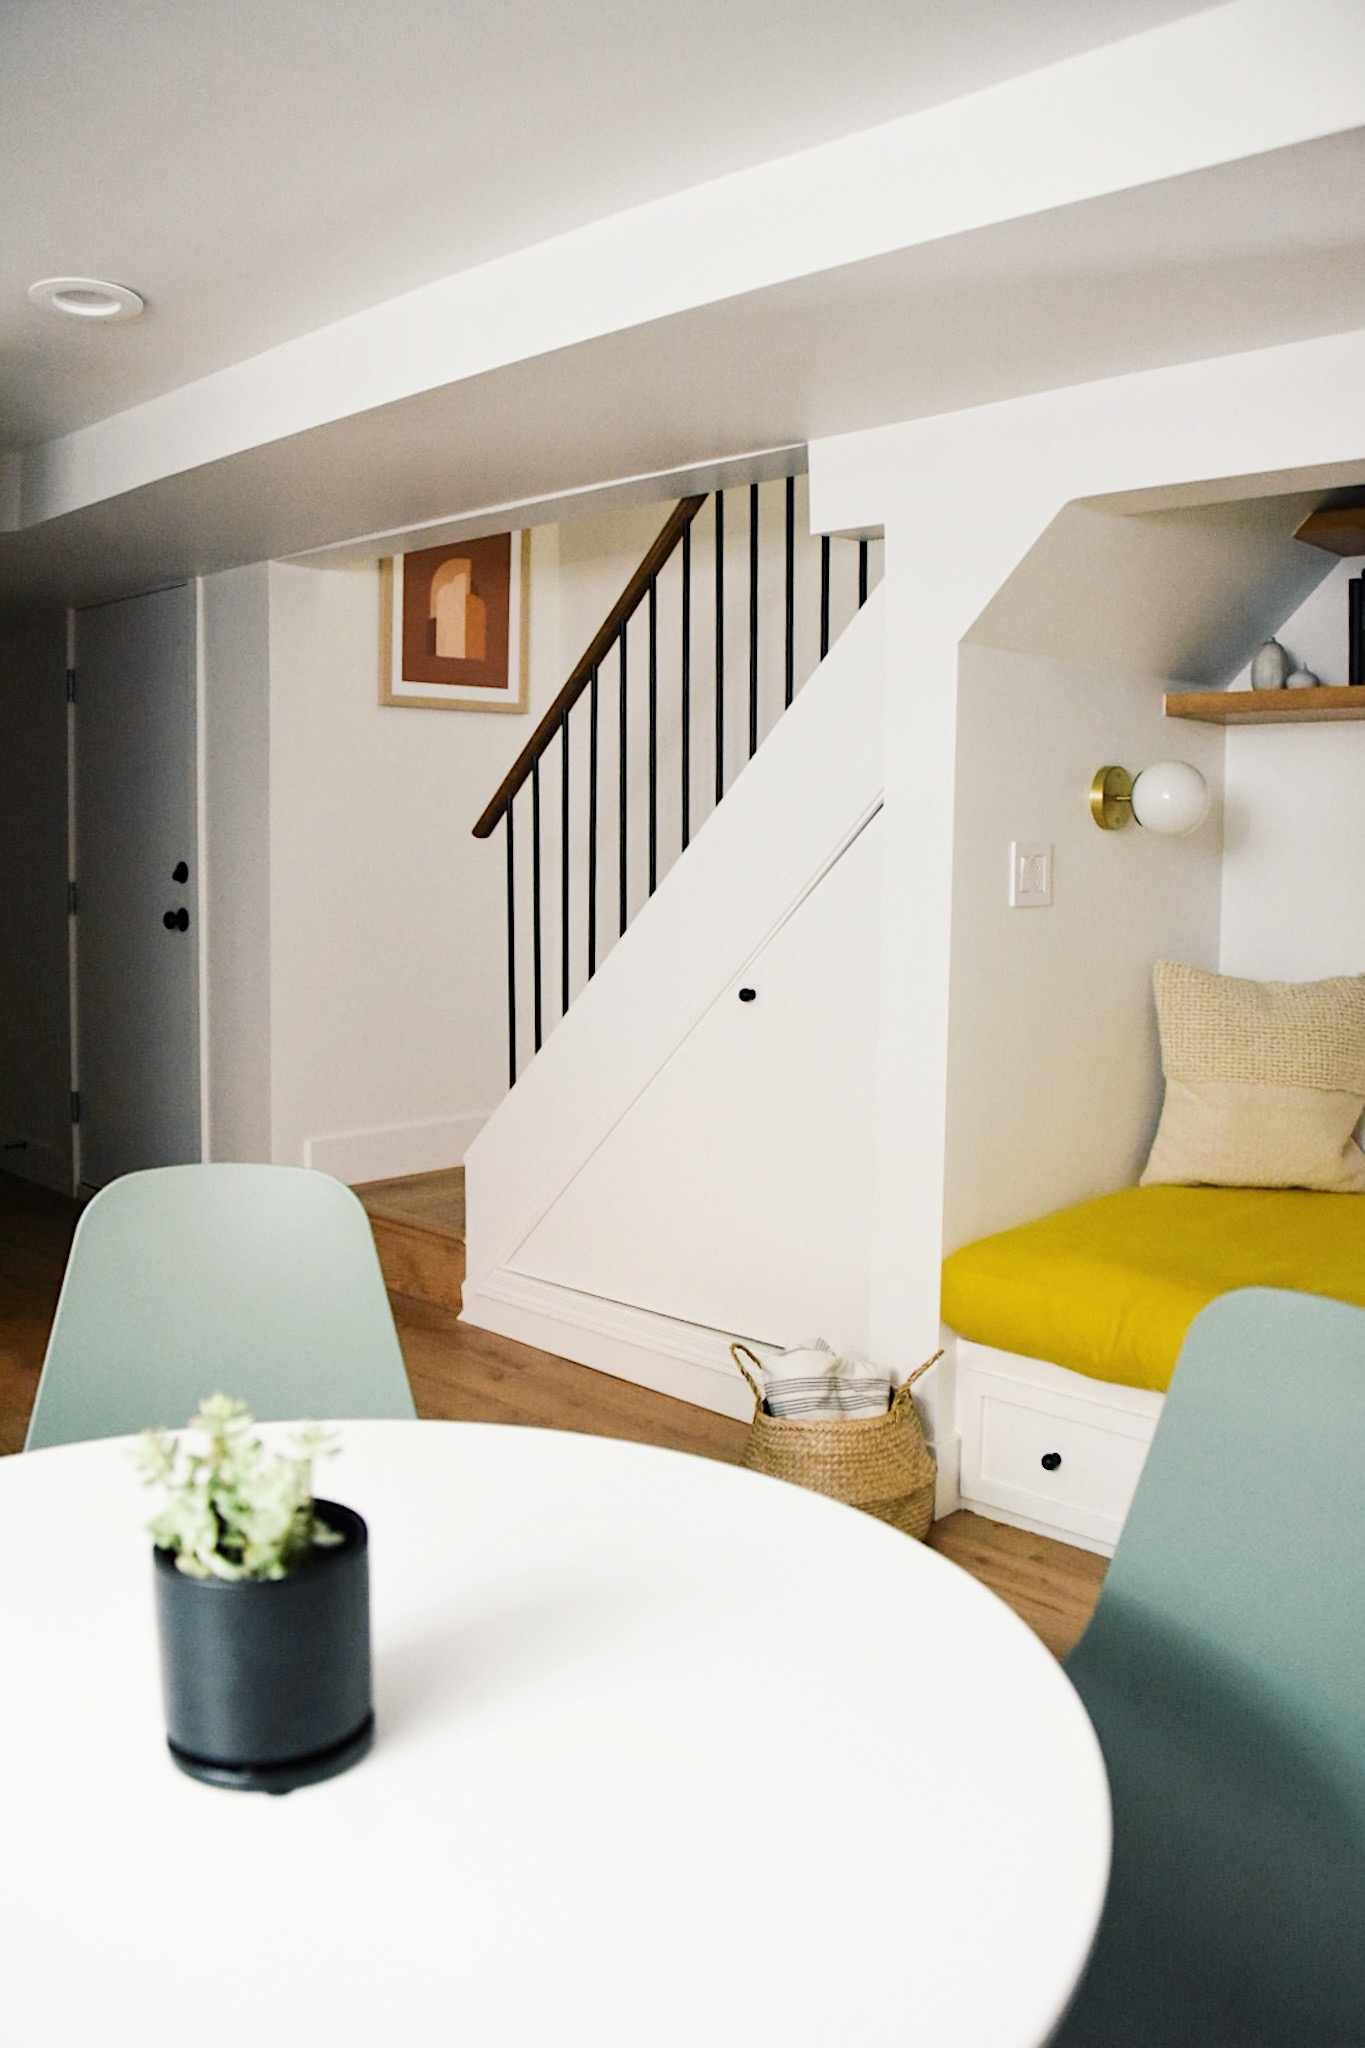 How a Seattle family of five turned a dark family basement in their 1930s tudor into a bright and airy multi-purpose workspace and playroom (with a cozy under stair reading nook!).